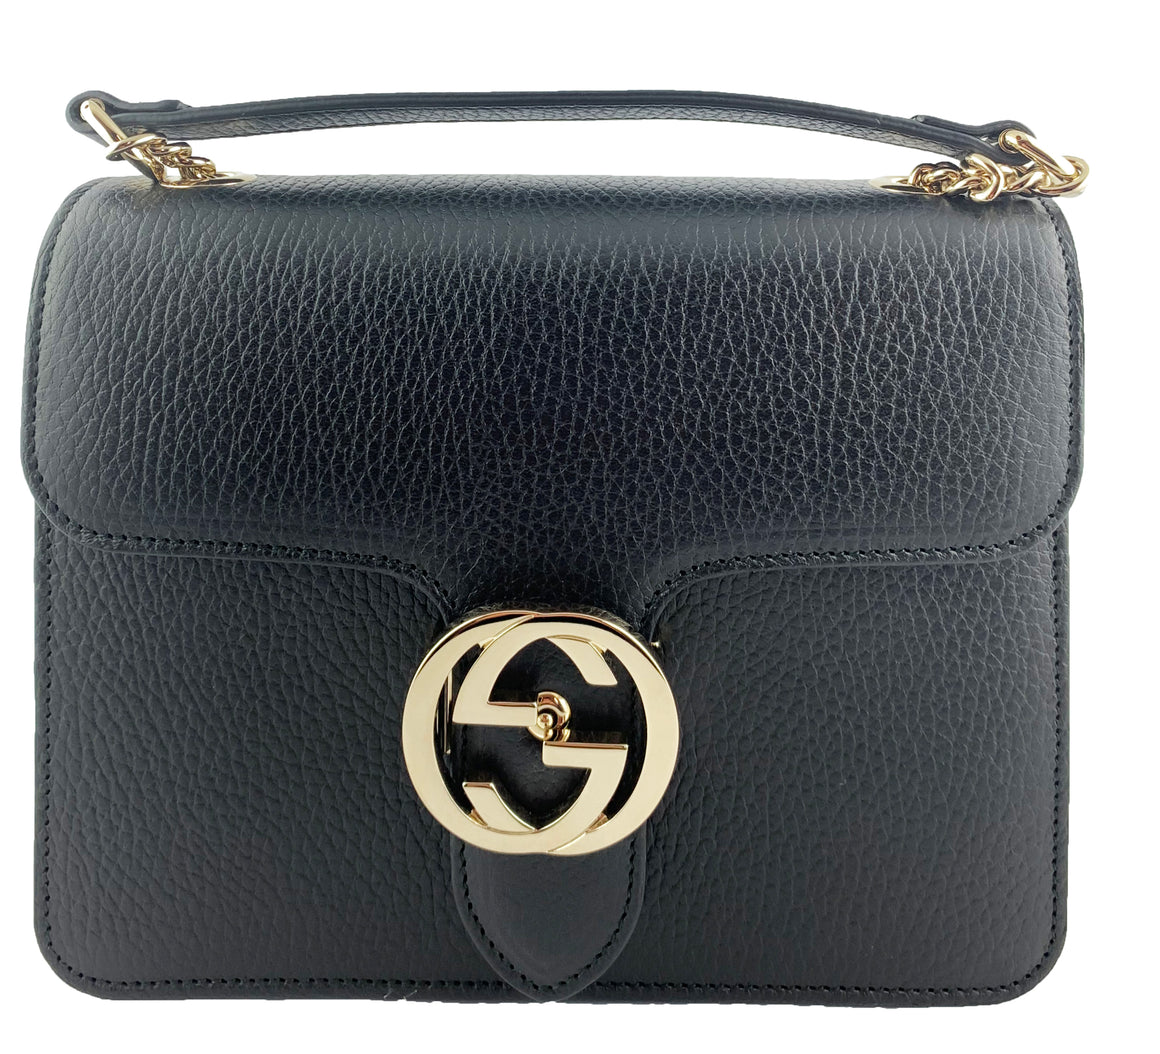 Gucci Interlocking Medium GG Buckle Bag Black